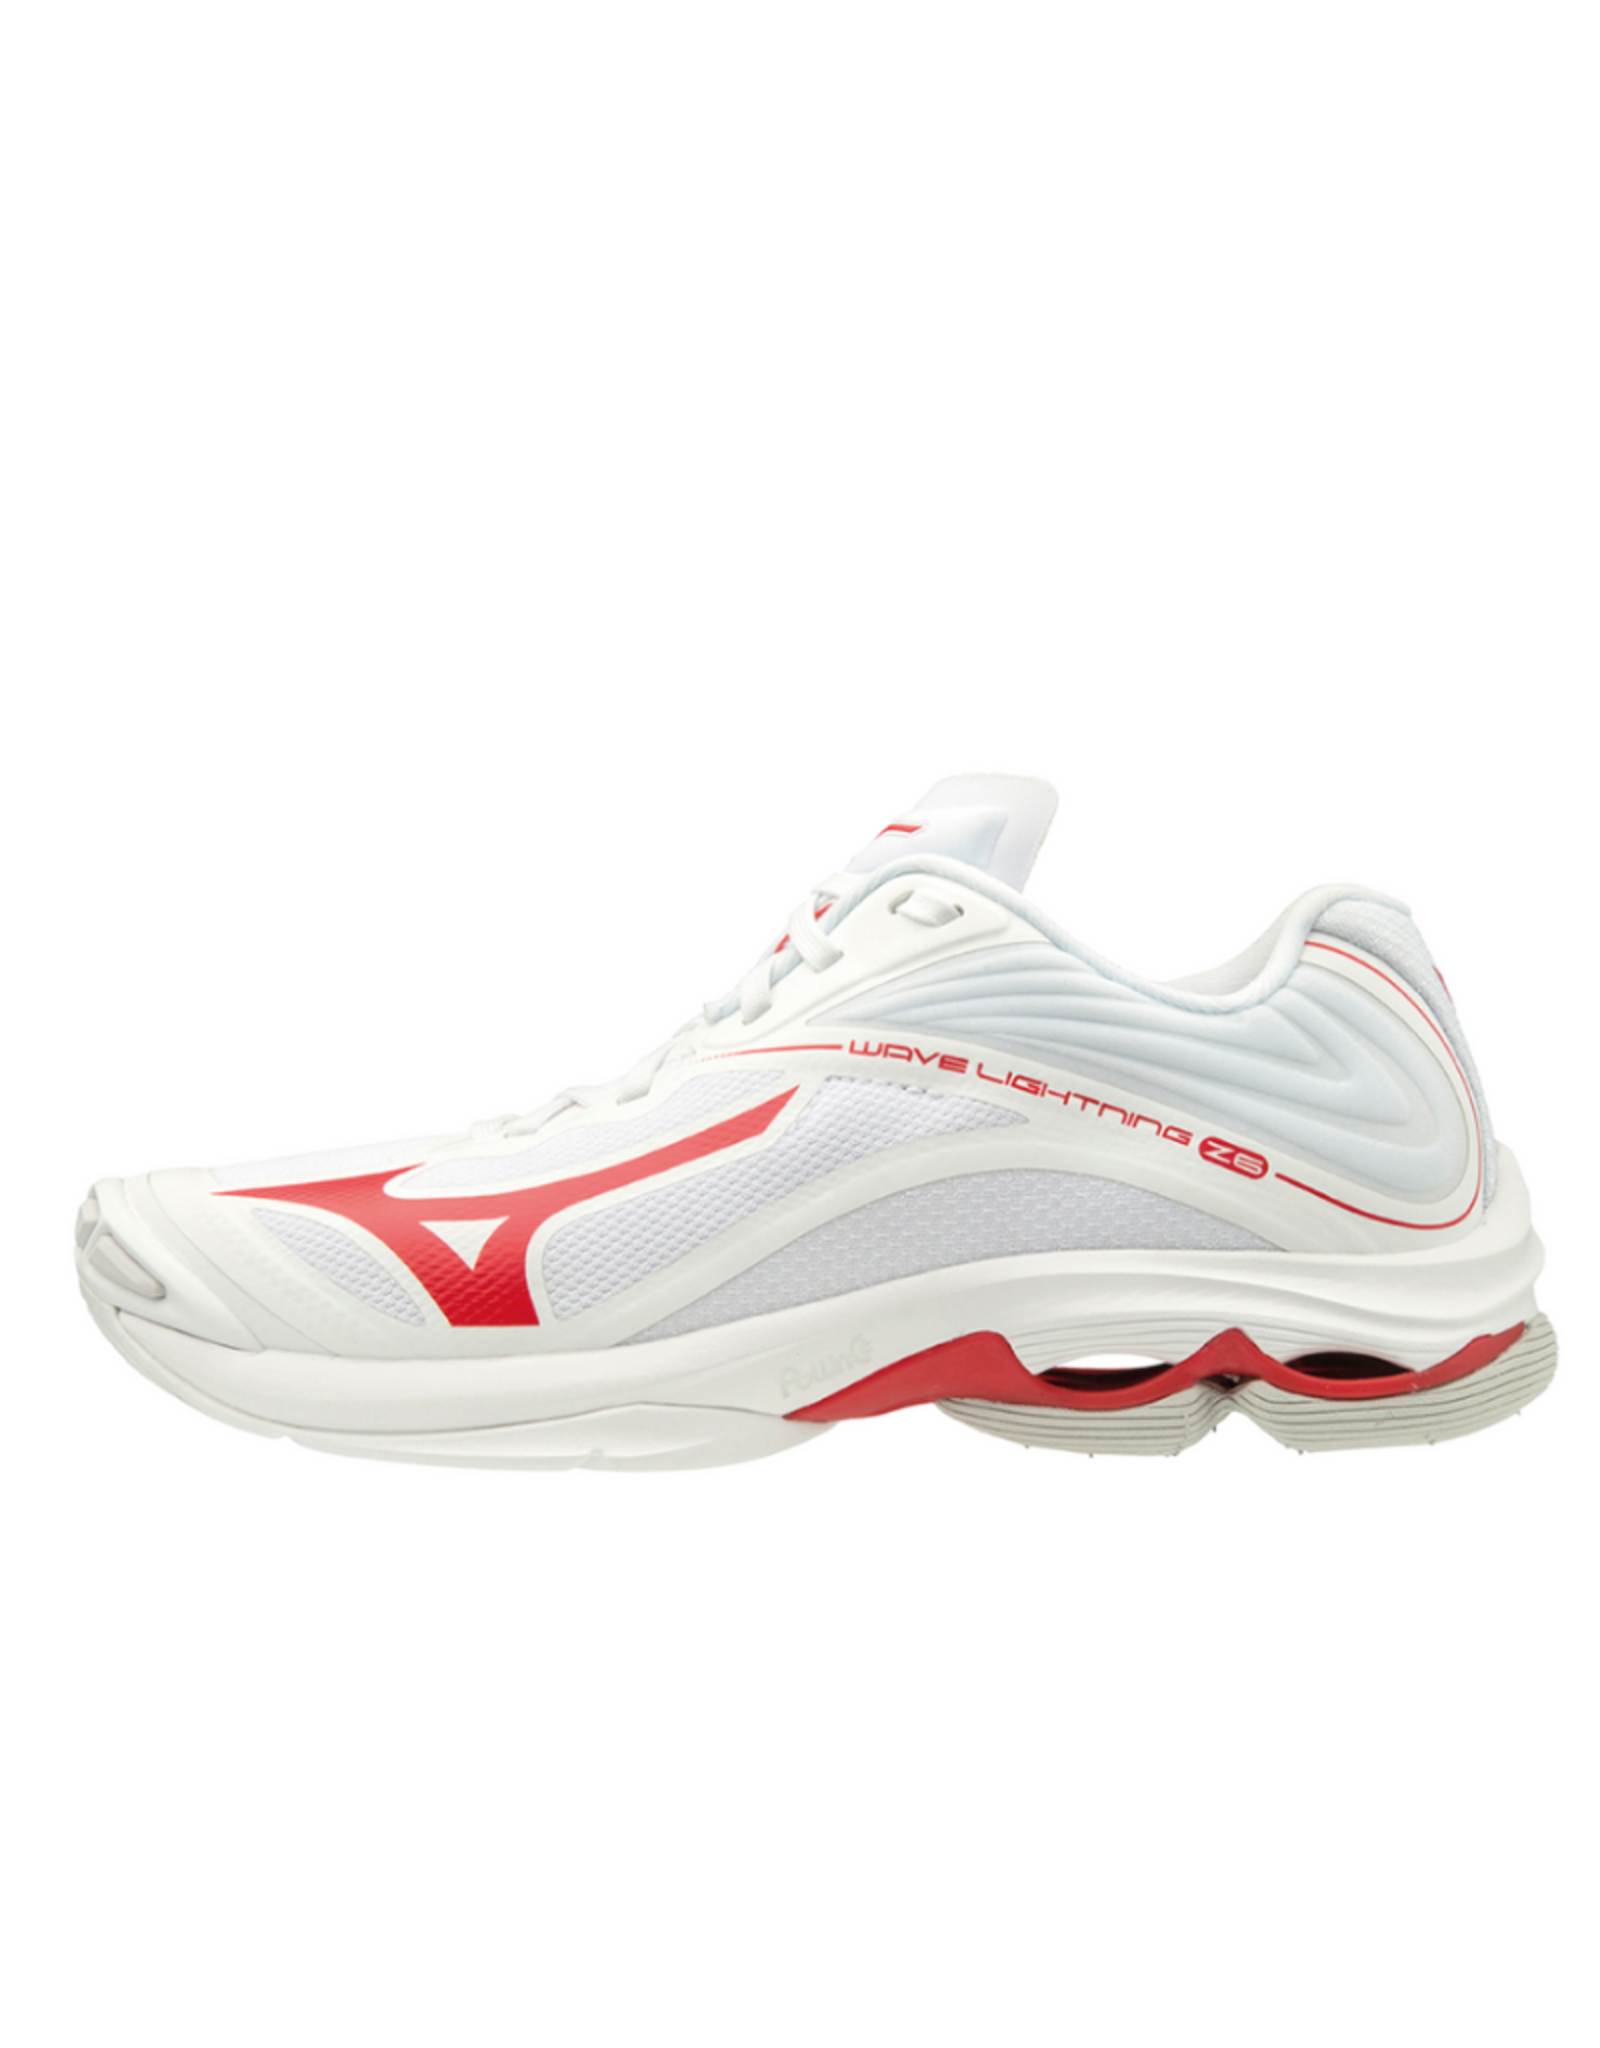 Mizuno Women's Wave Lightning Z6 Shoe White/Red